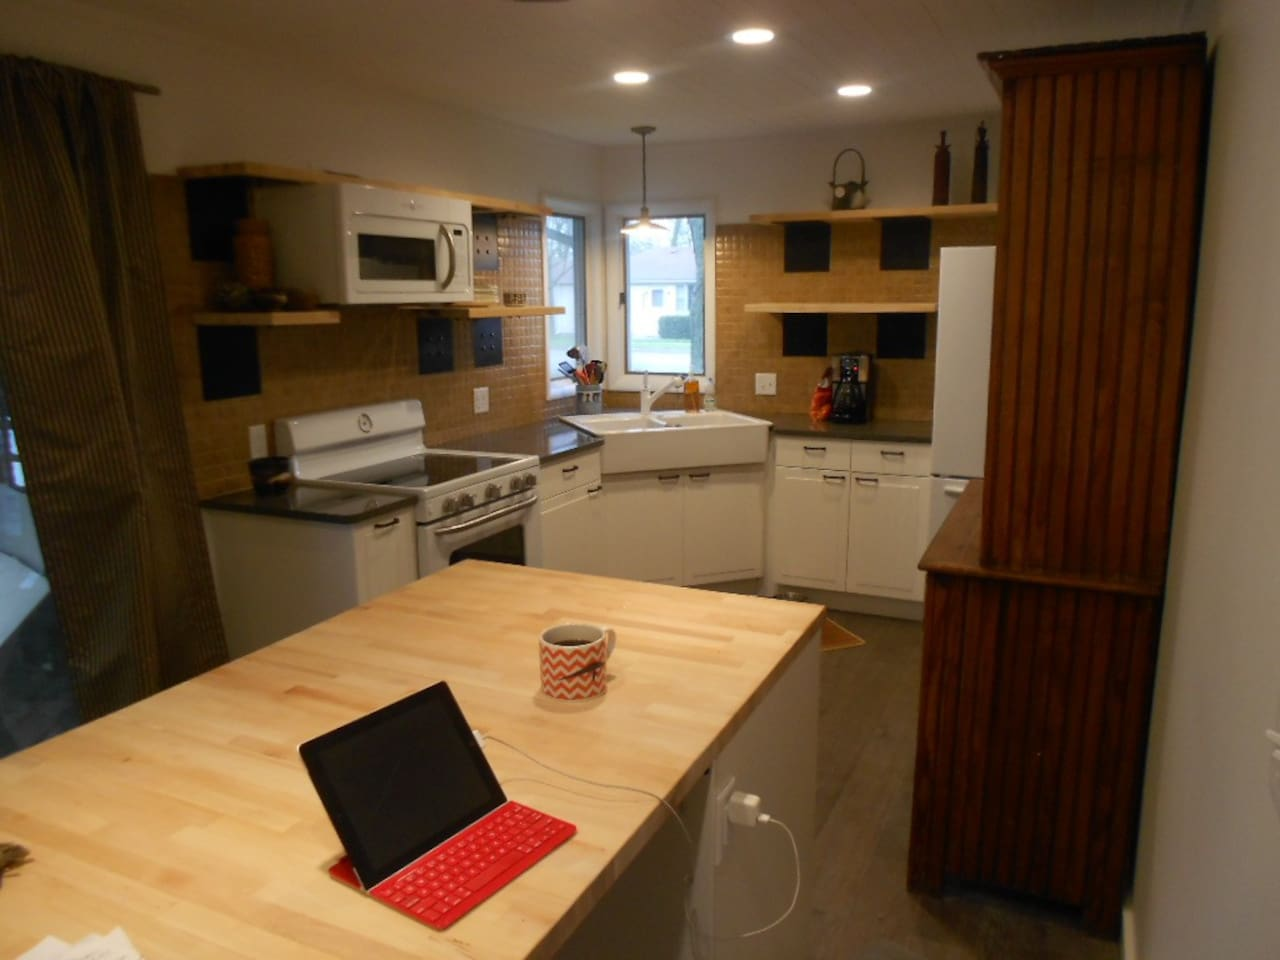 The new kitchen re-model is complete--May 2015